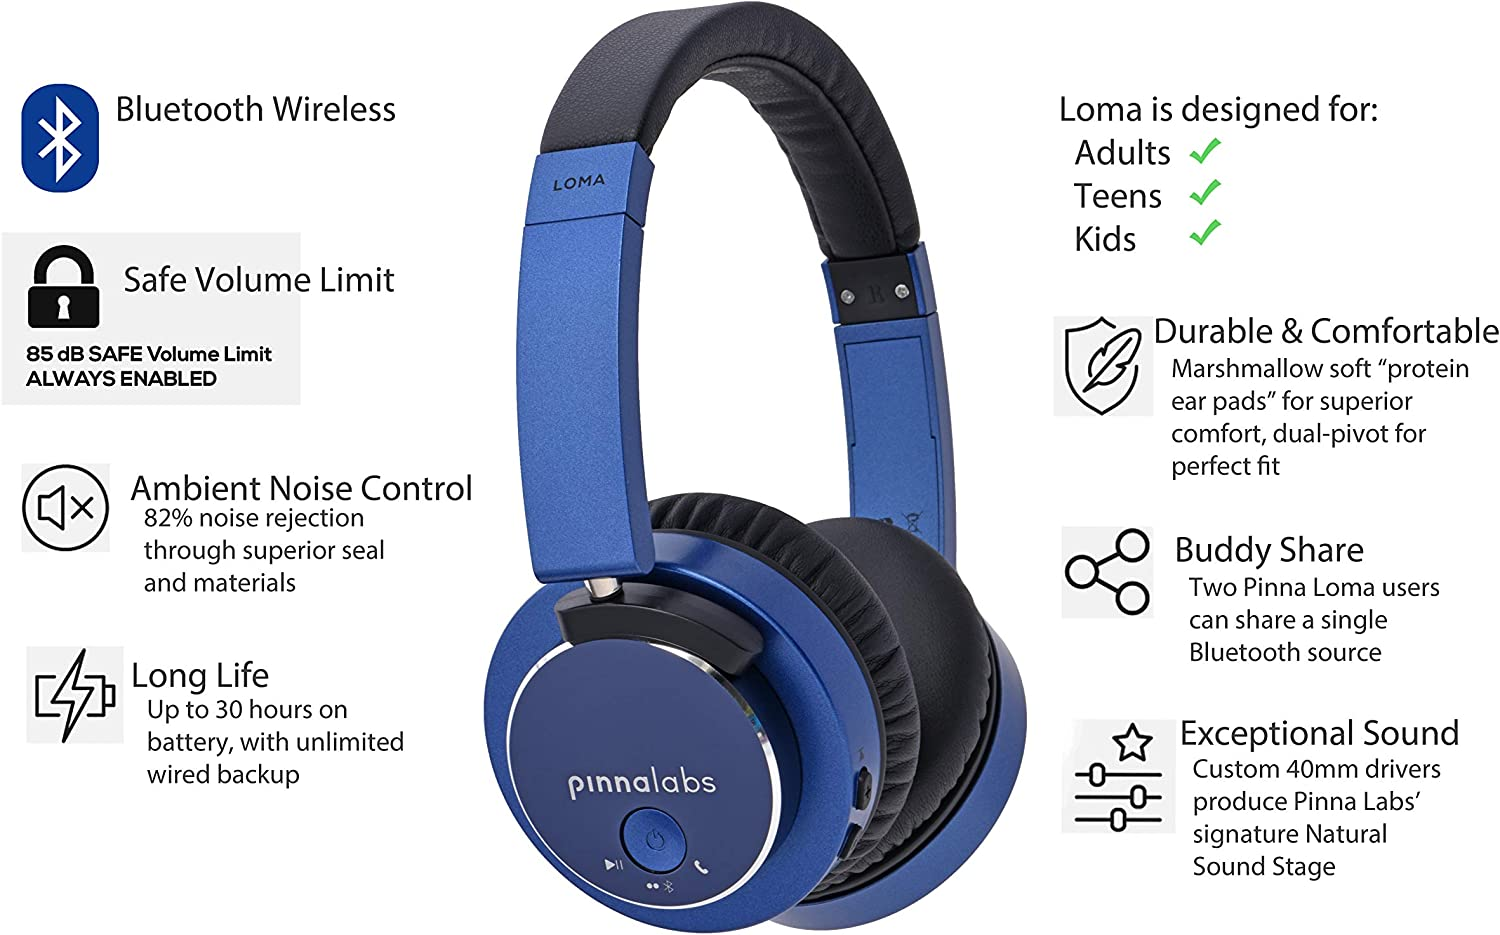 Pinna Labs LOMA Safe Volume 85dB Limited Premium Bluetooth Headphone for Kids, Teens, Adults – 30HRs Playtime BuddyShare Cobalt Blue